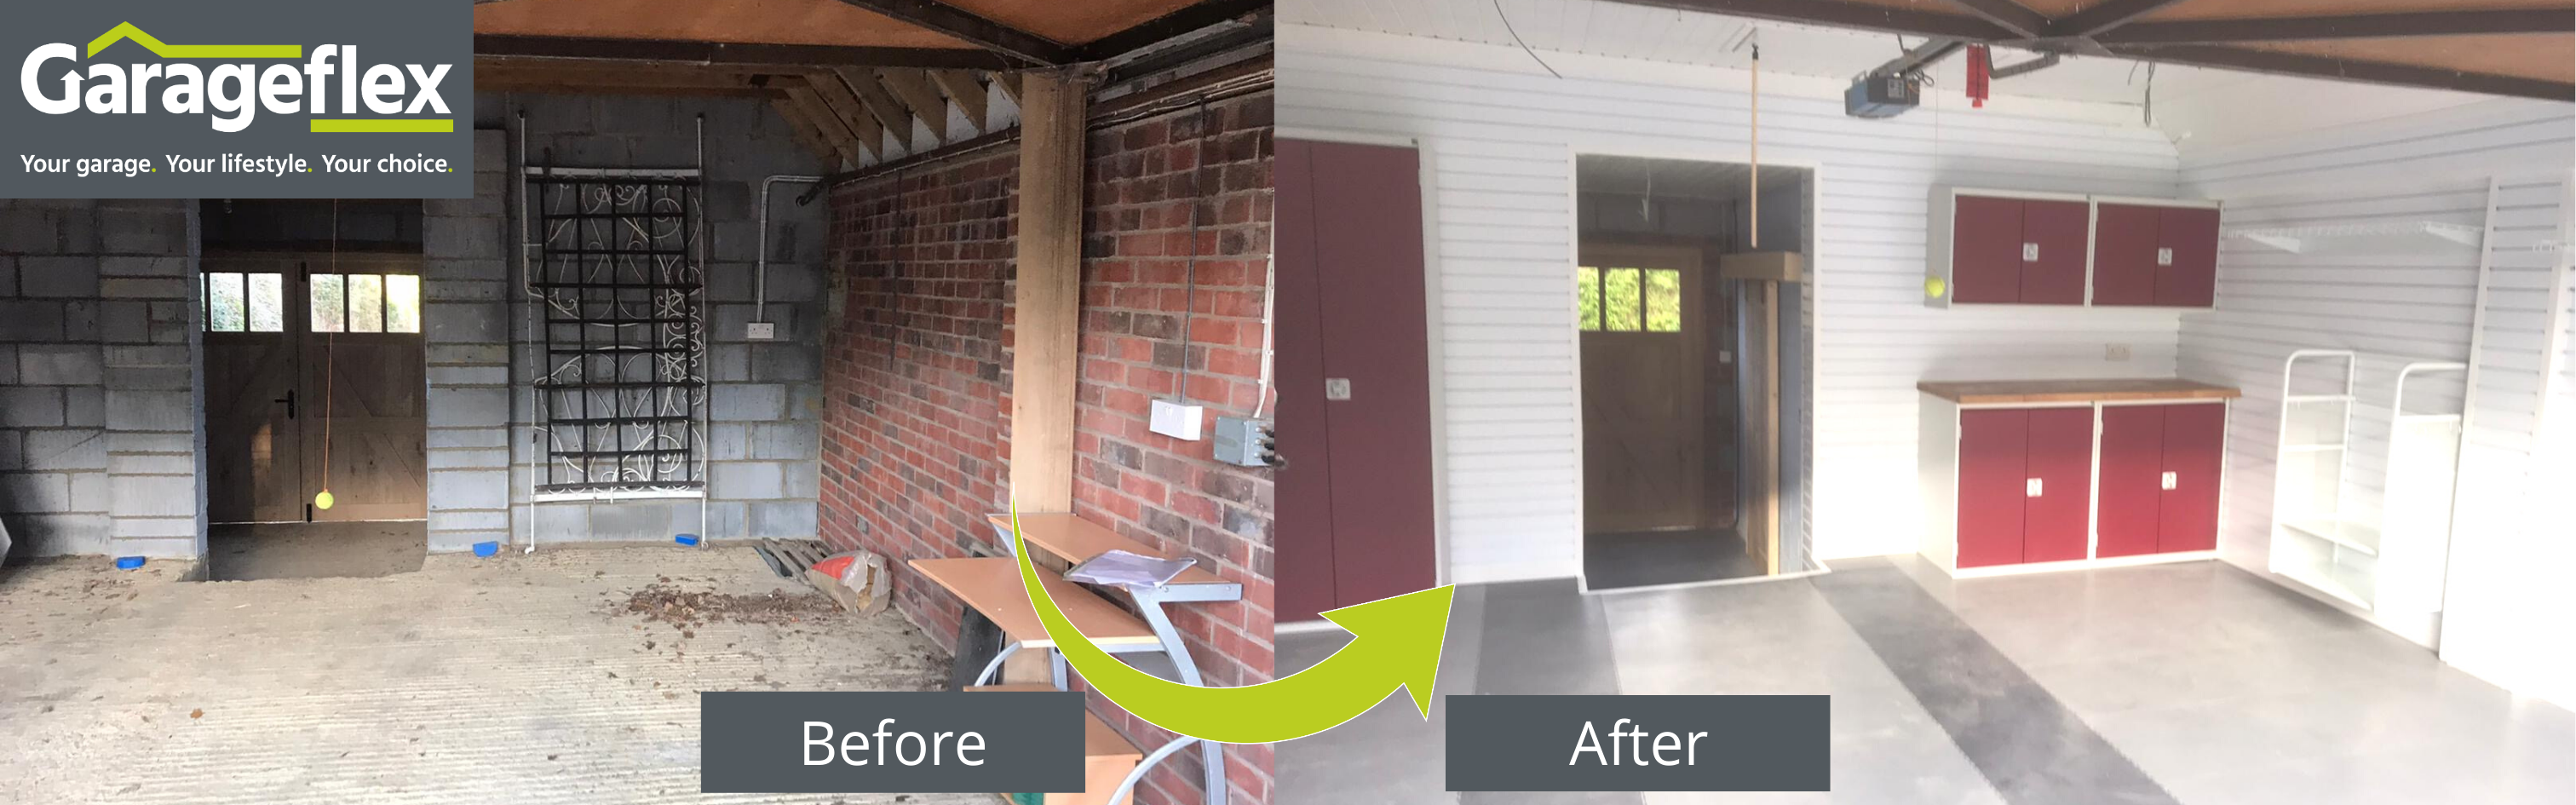 Dust free garage before and after